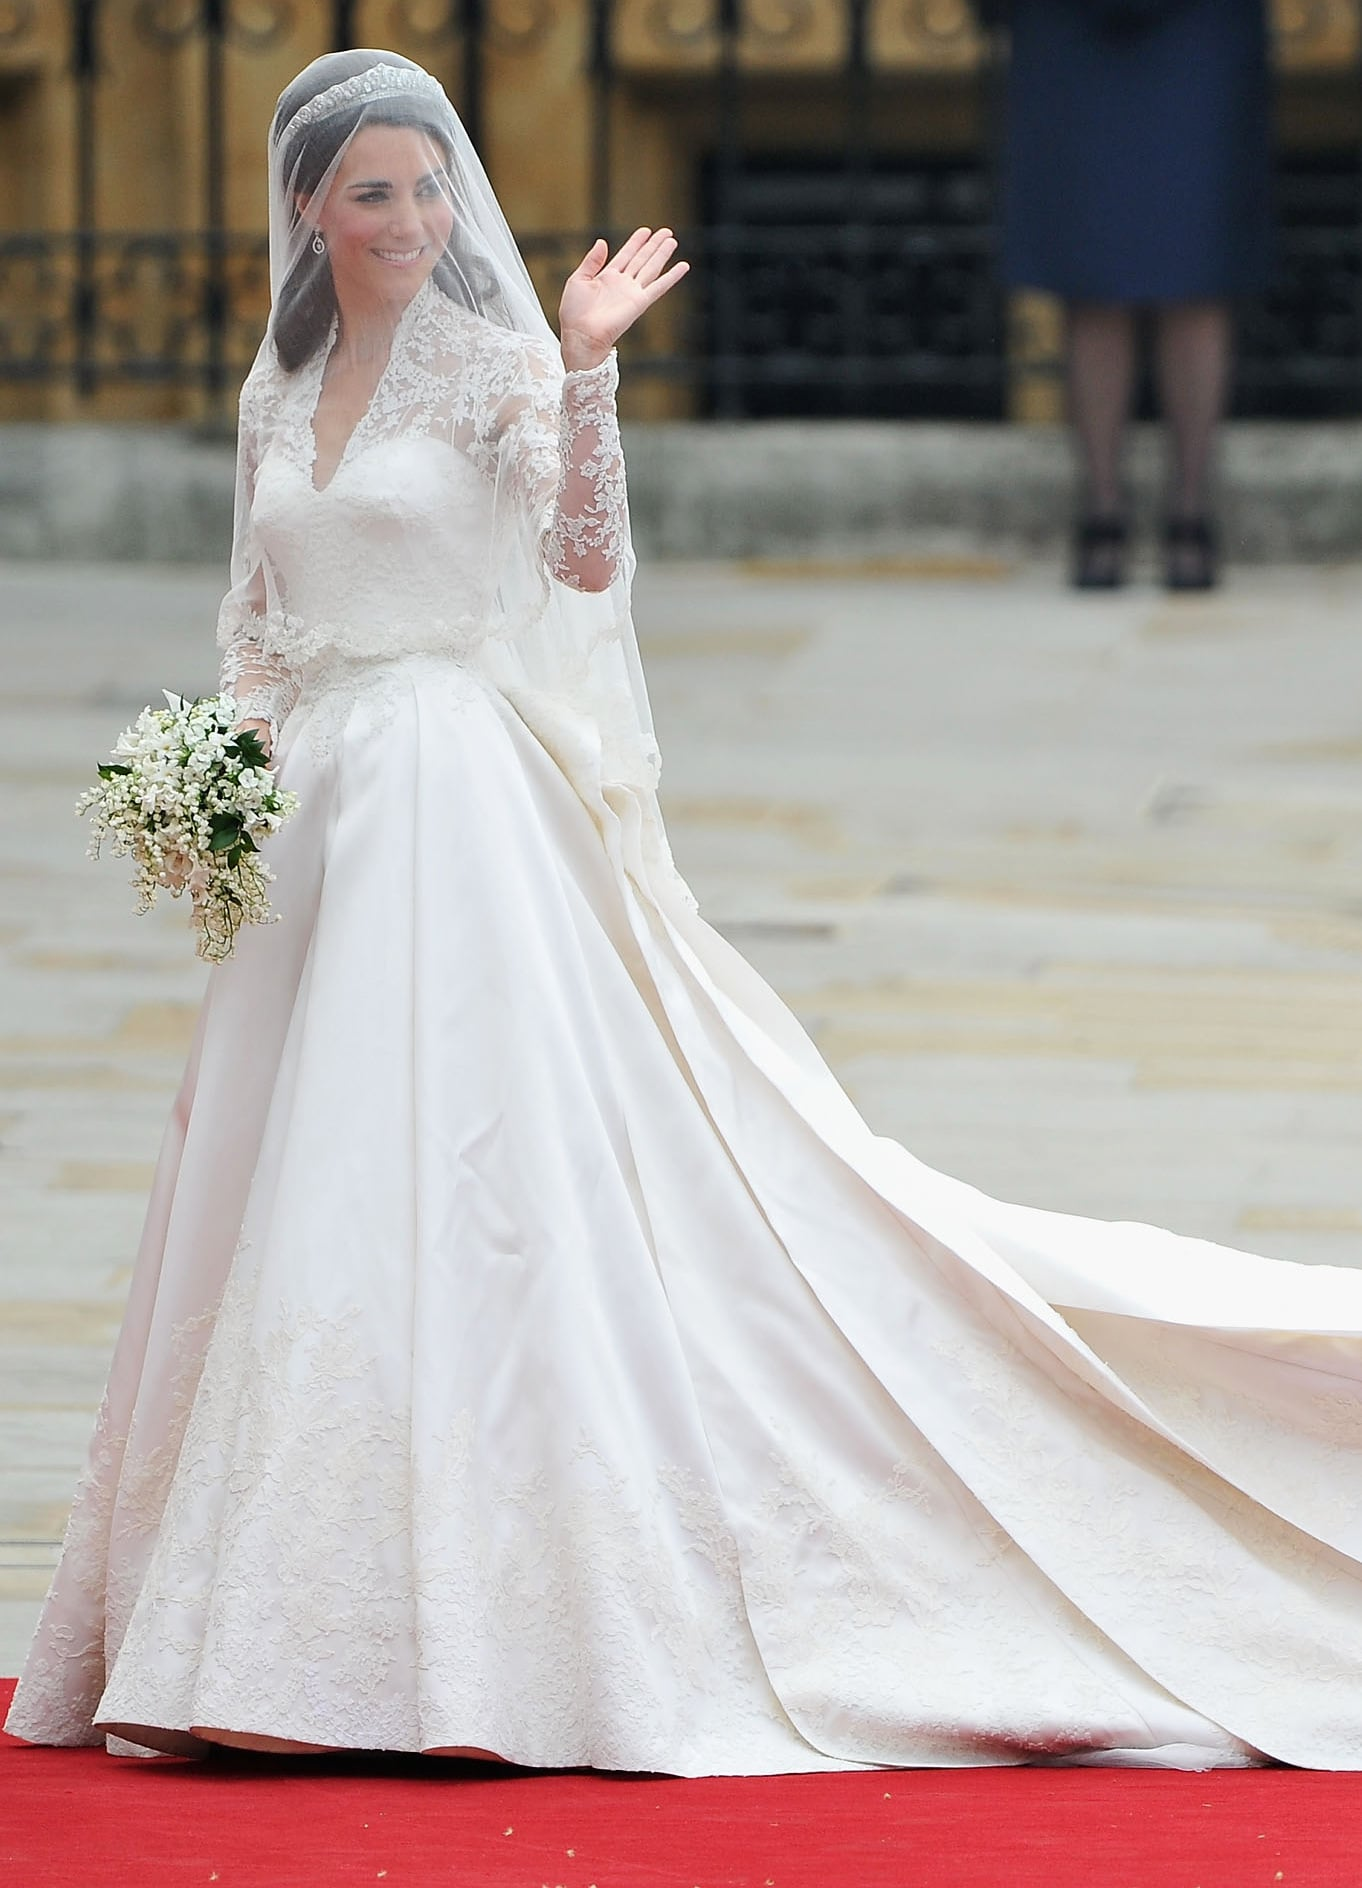 And arguably her most famous McQueen? The wedding gown that stunned the world.